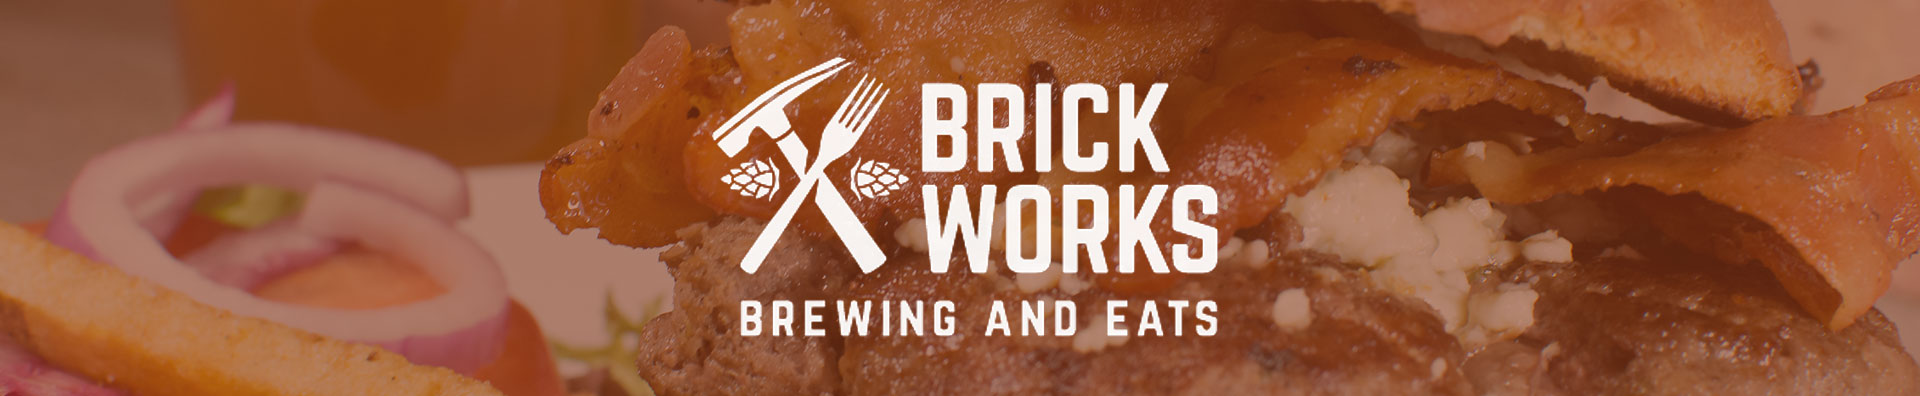 Brick Works Brewing and Eats banner